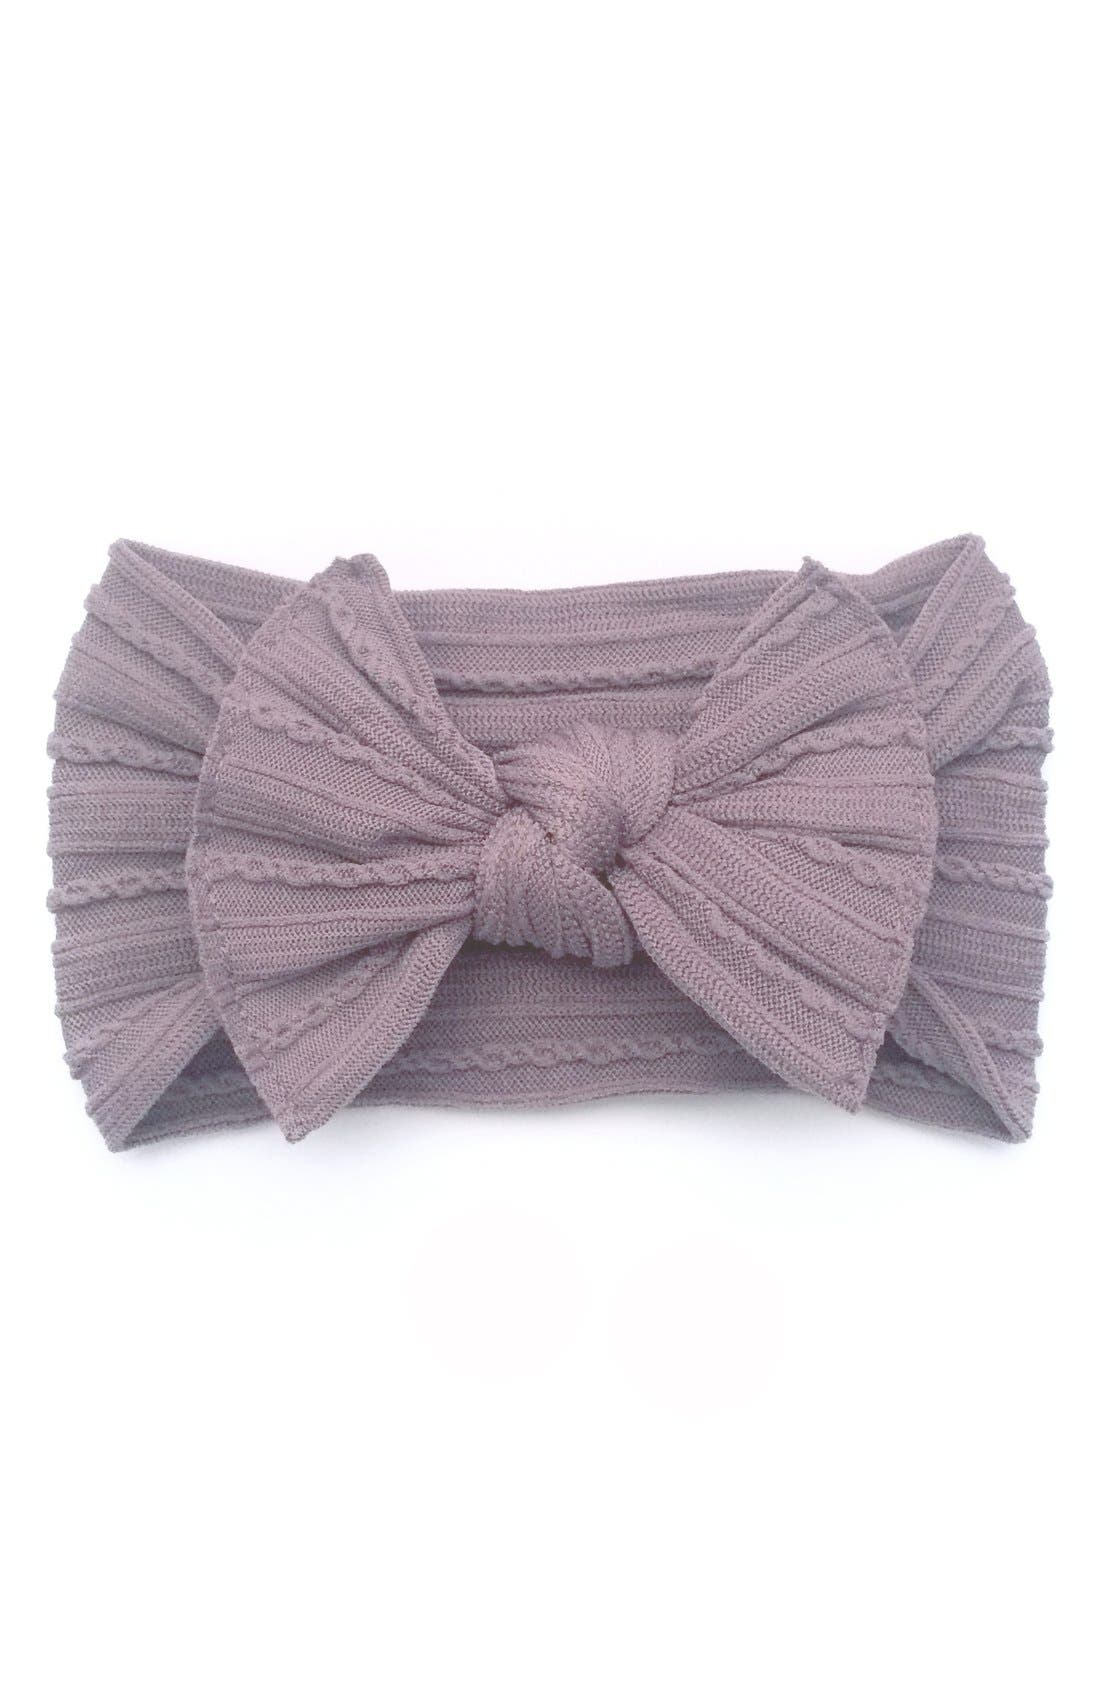 Alternate Image 1 Selected - Baby Bling Cable Knit Bow Headband (Baby Girls)